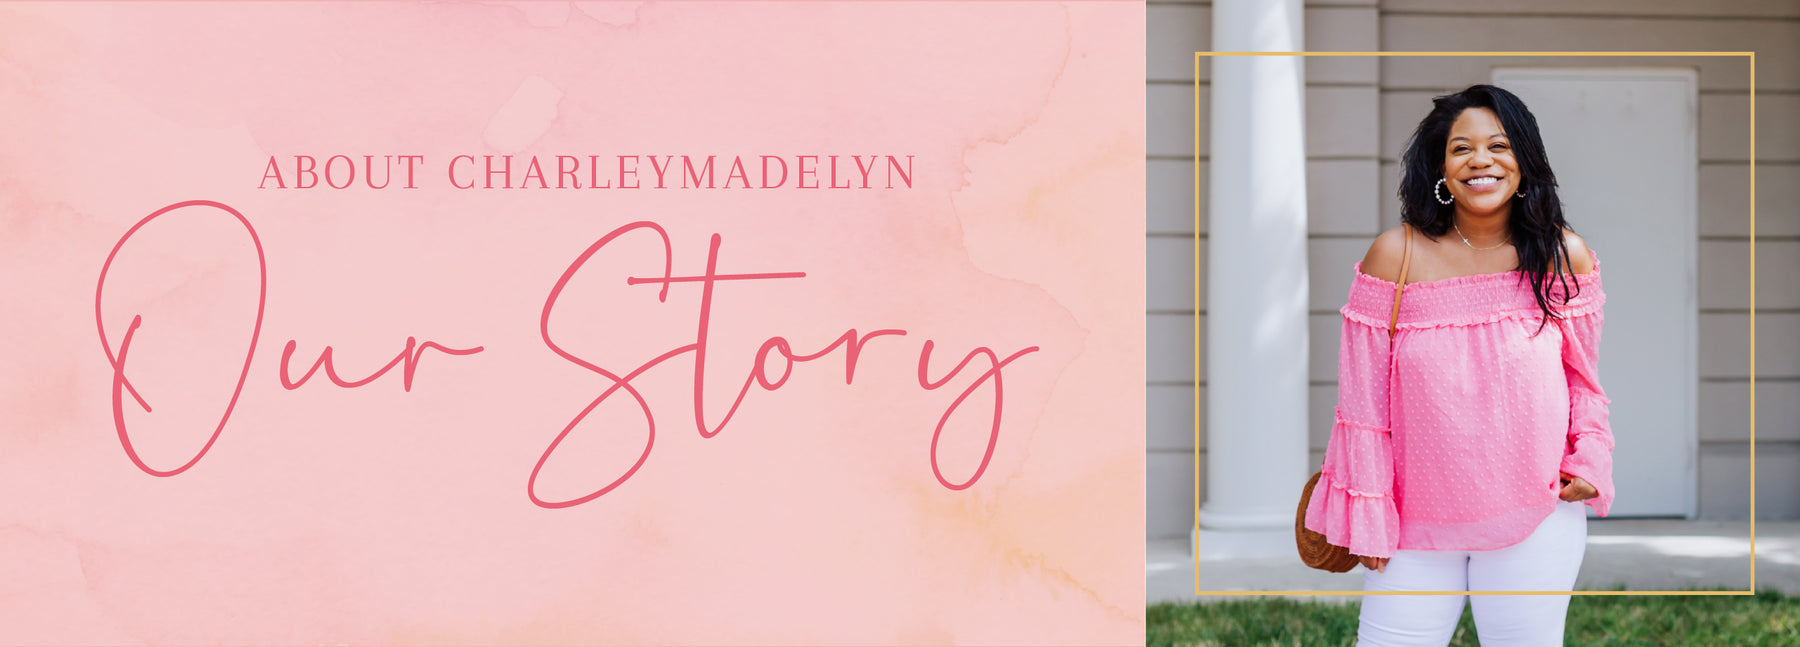 About CharleyMadelyn - Our Story